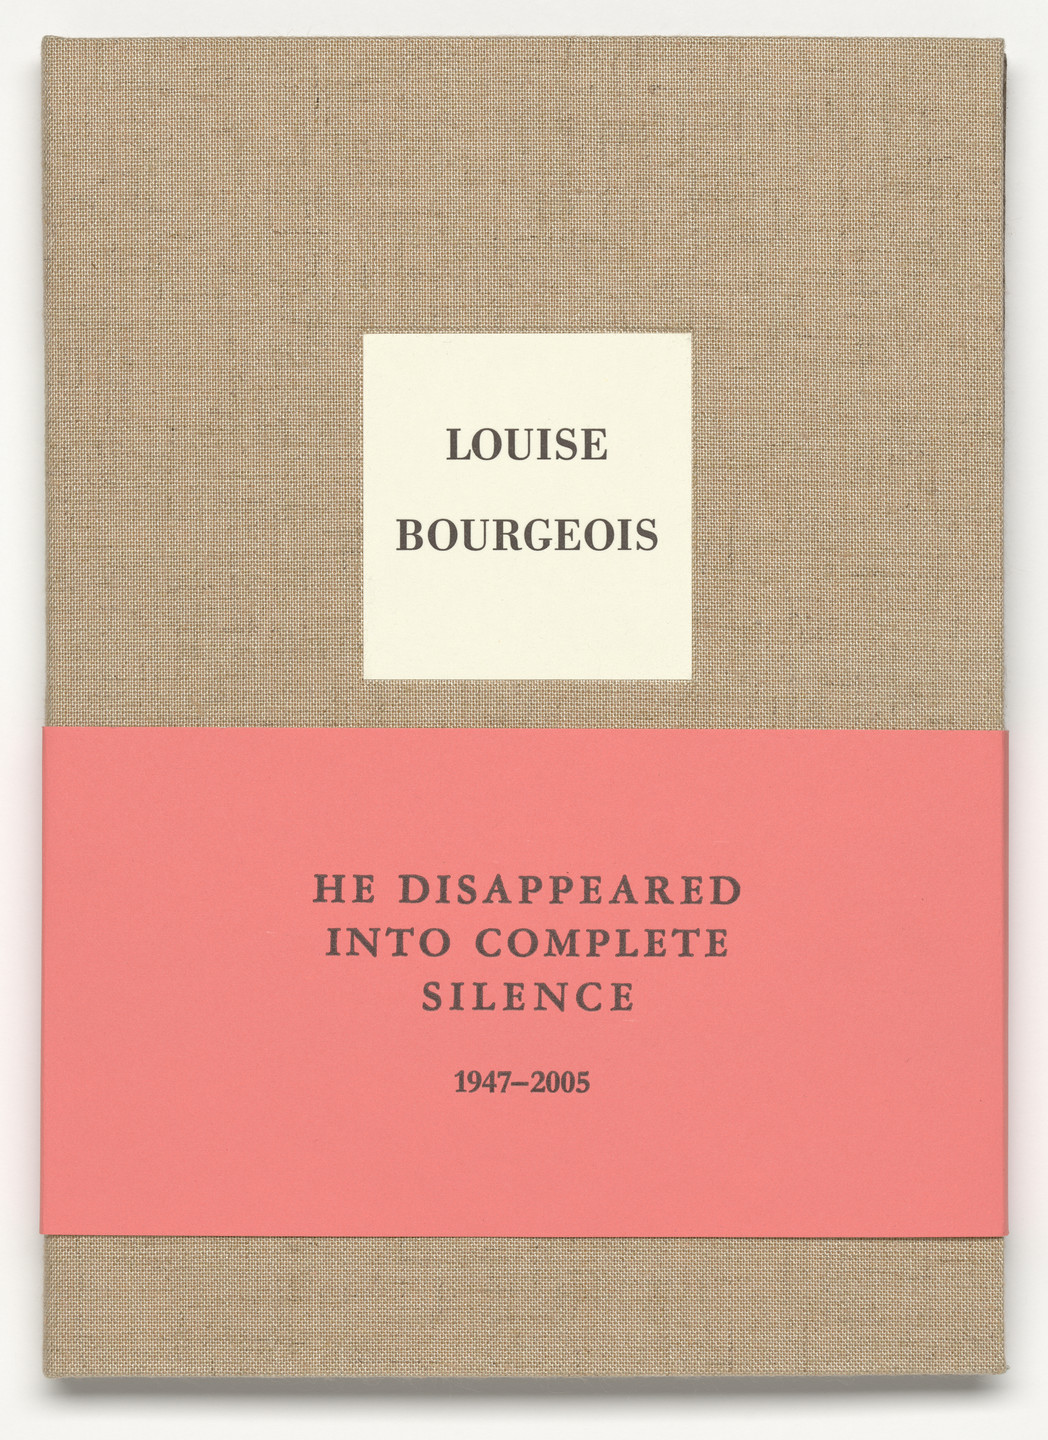 Louise Bourgeois. He Disappeared into Complete Silence, second edition. 2005